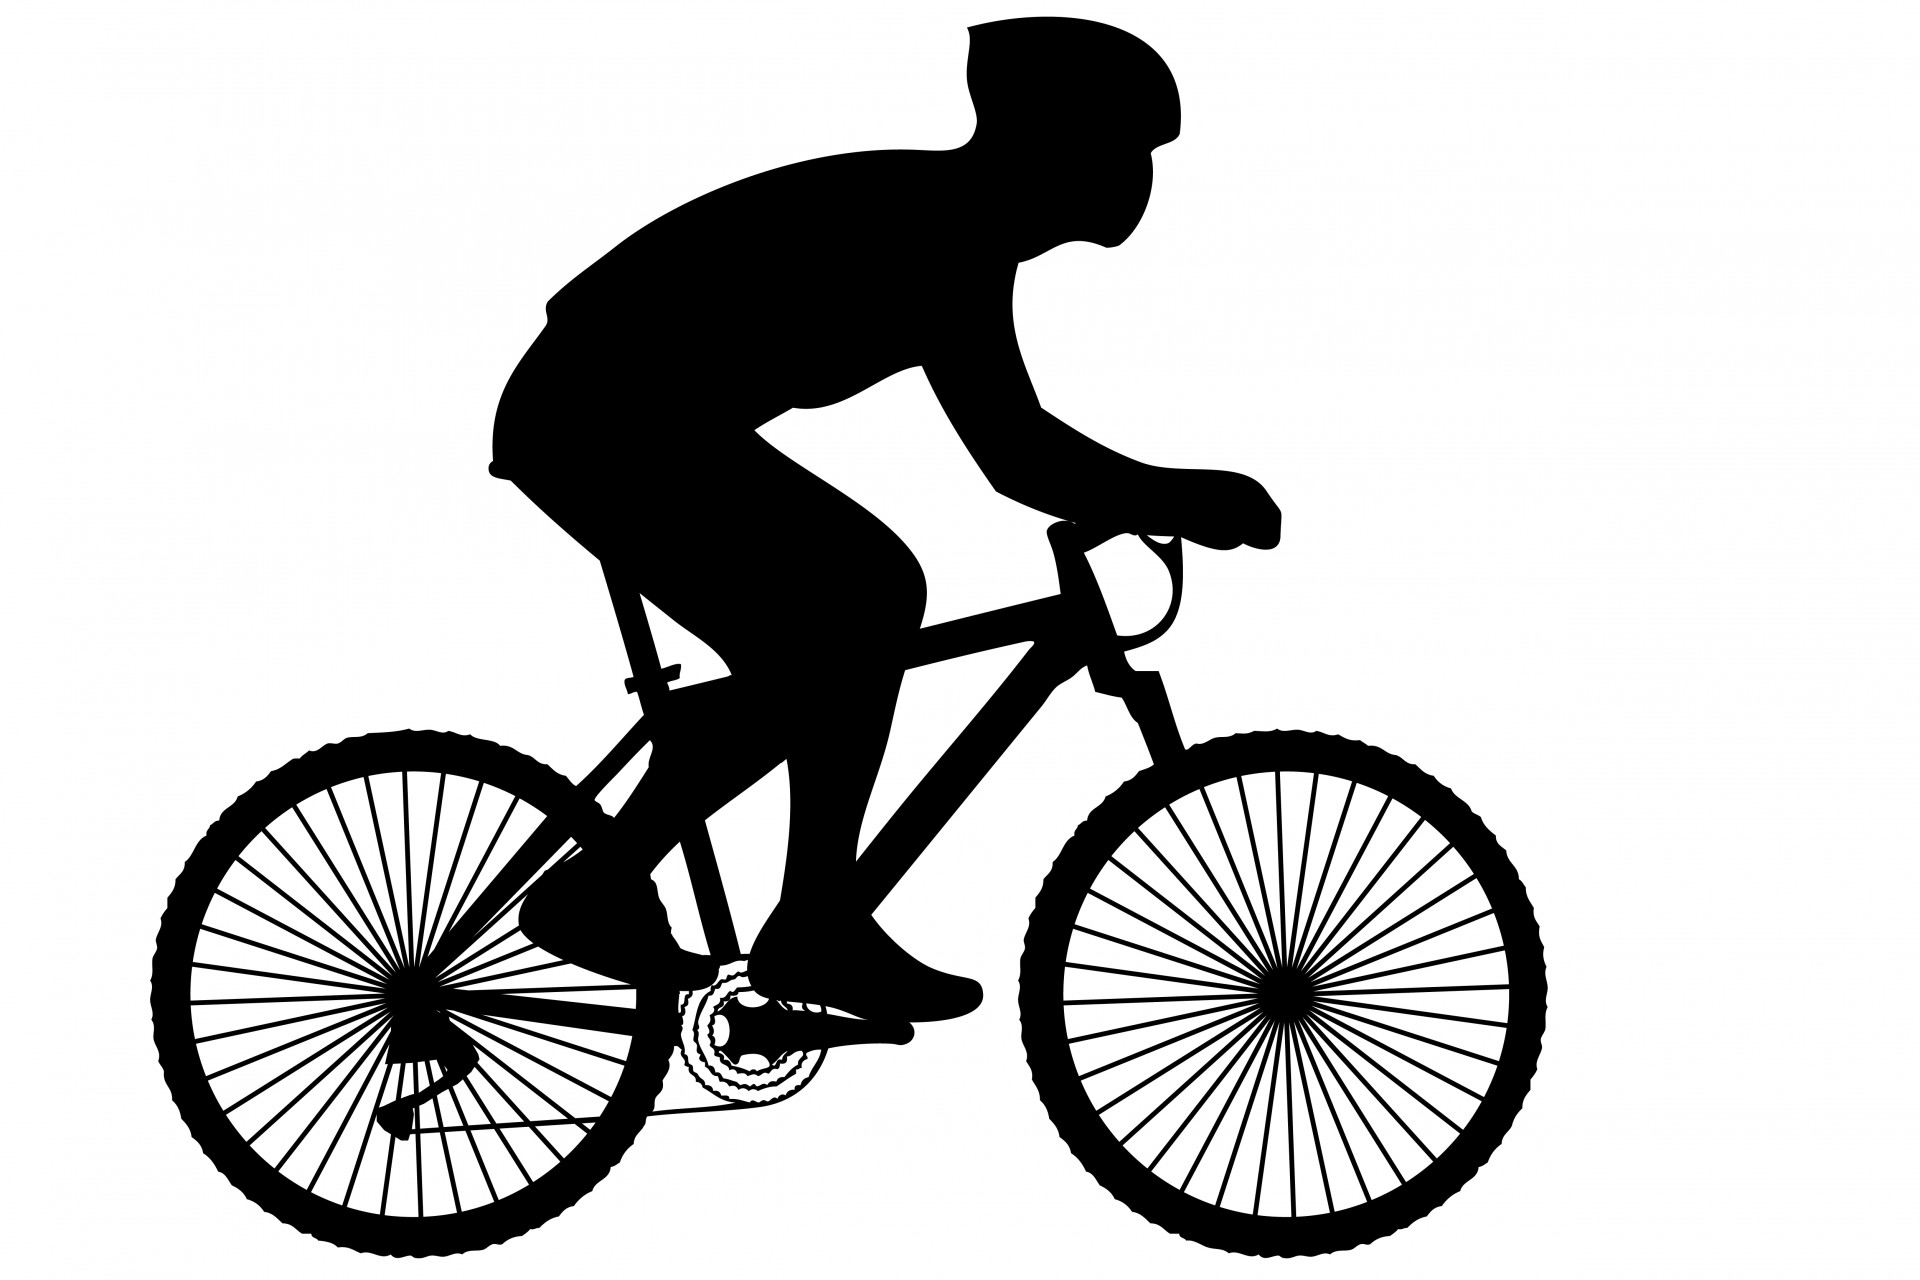 cyclist-black-silhouette-clipart[1]